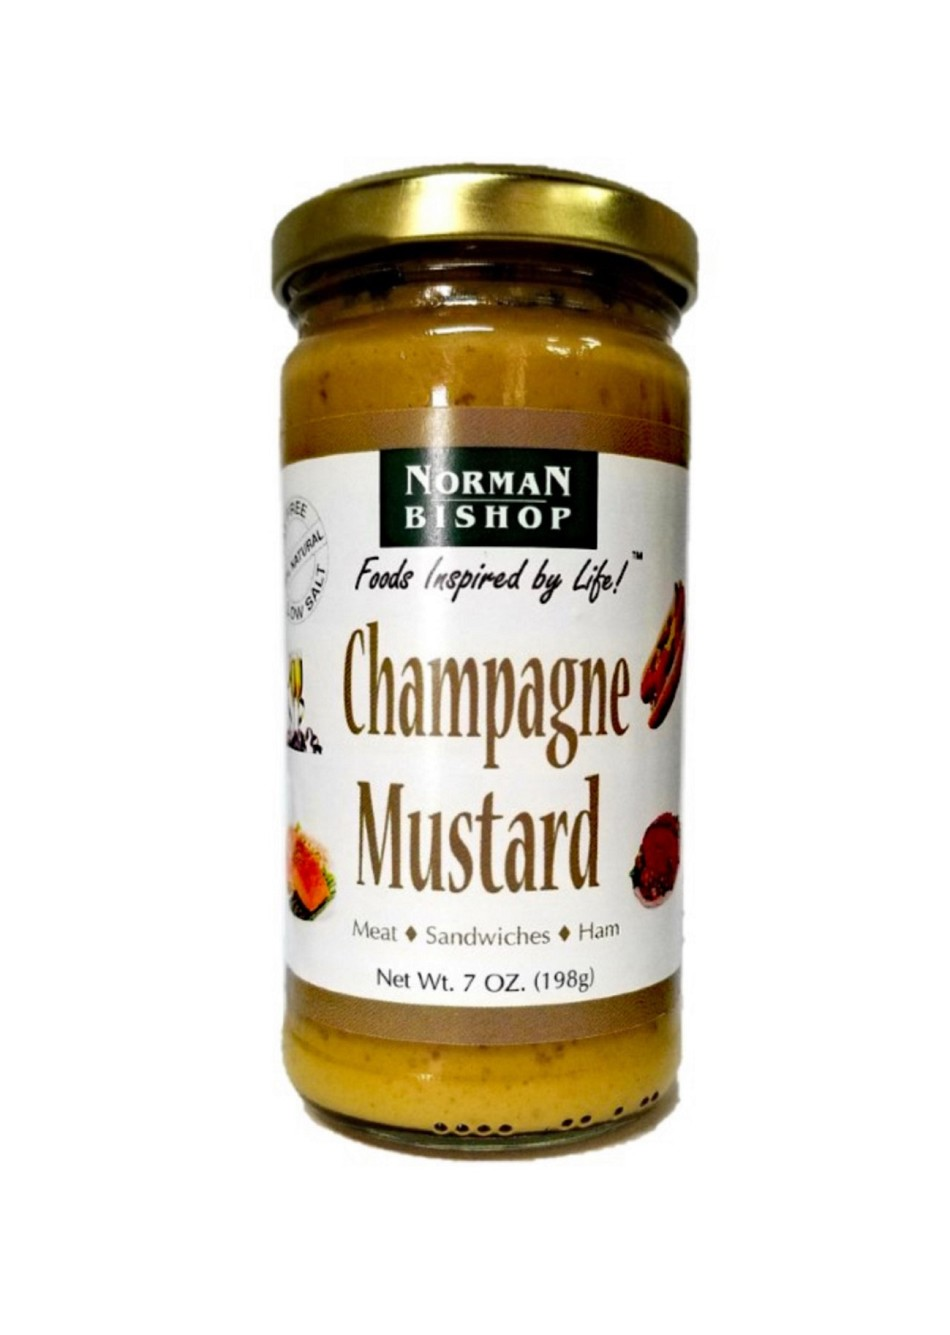 Norman Bishop Champagne Mustard